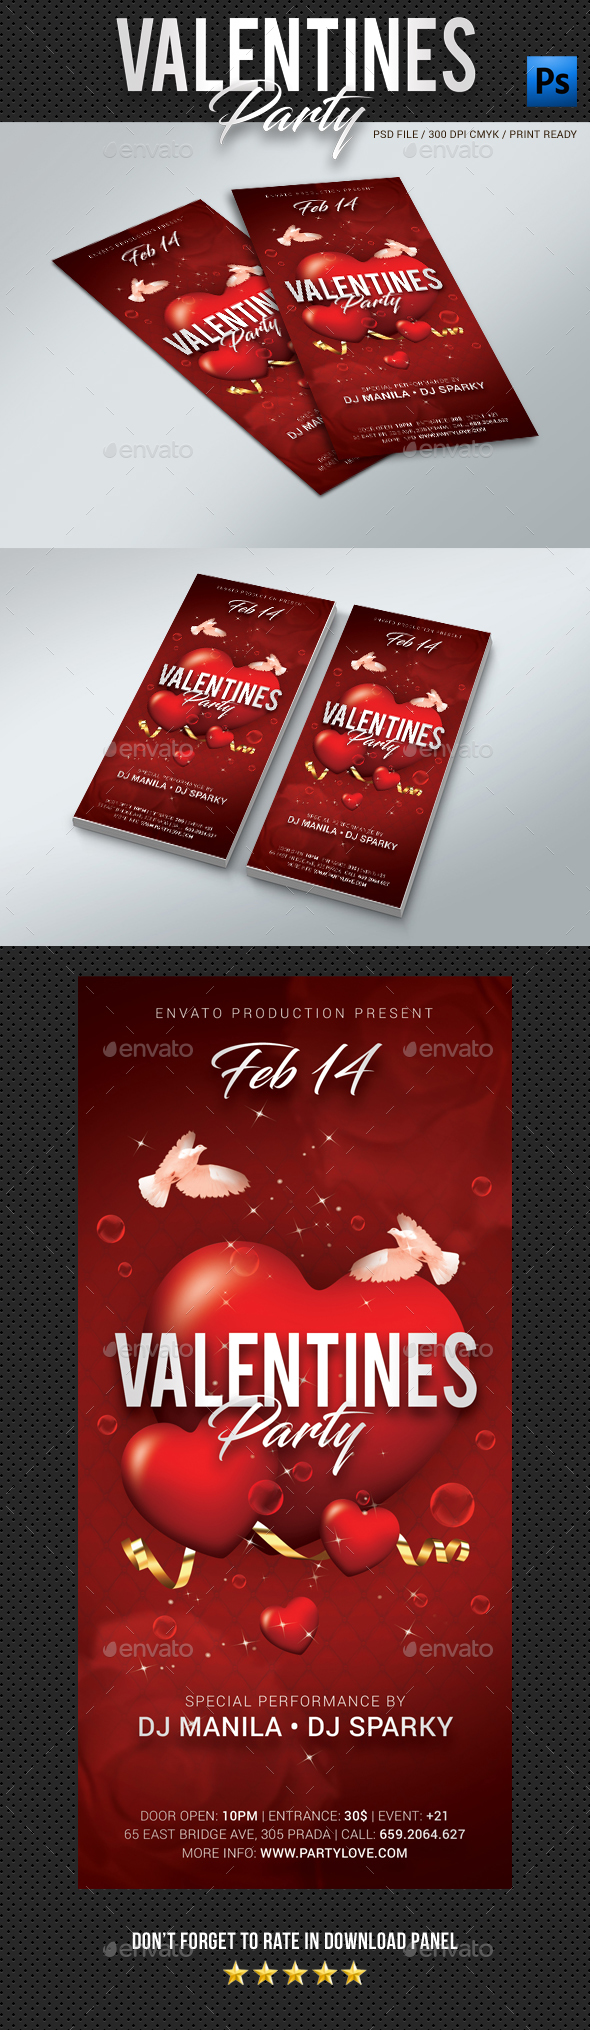 DL Valentines Day Party Flyer - Clubs & Parties Events